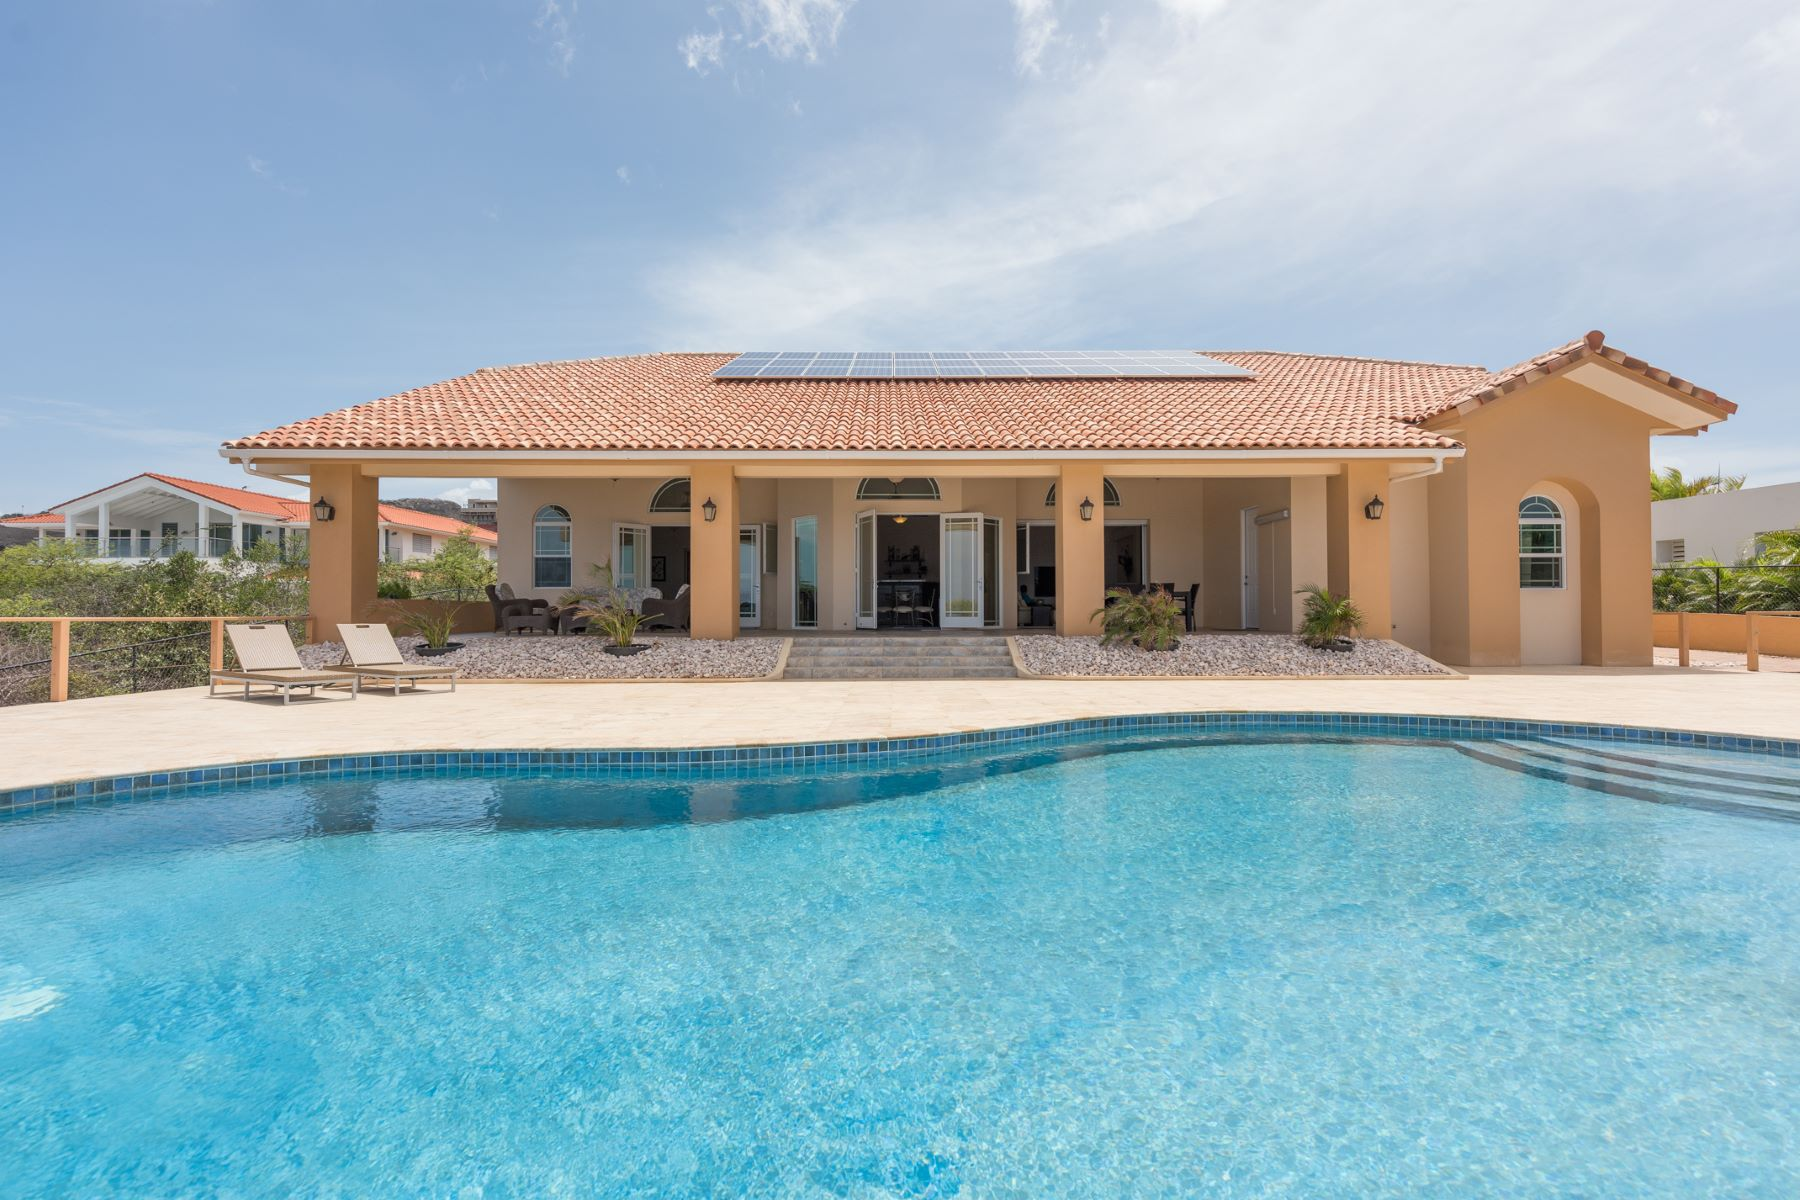 Single Family Home for Sale at Rif St. Marie Oceanfront Villa 307 Willemstad, Curacao